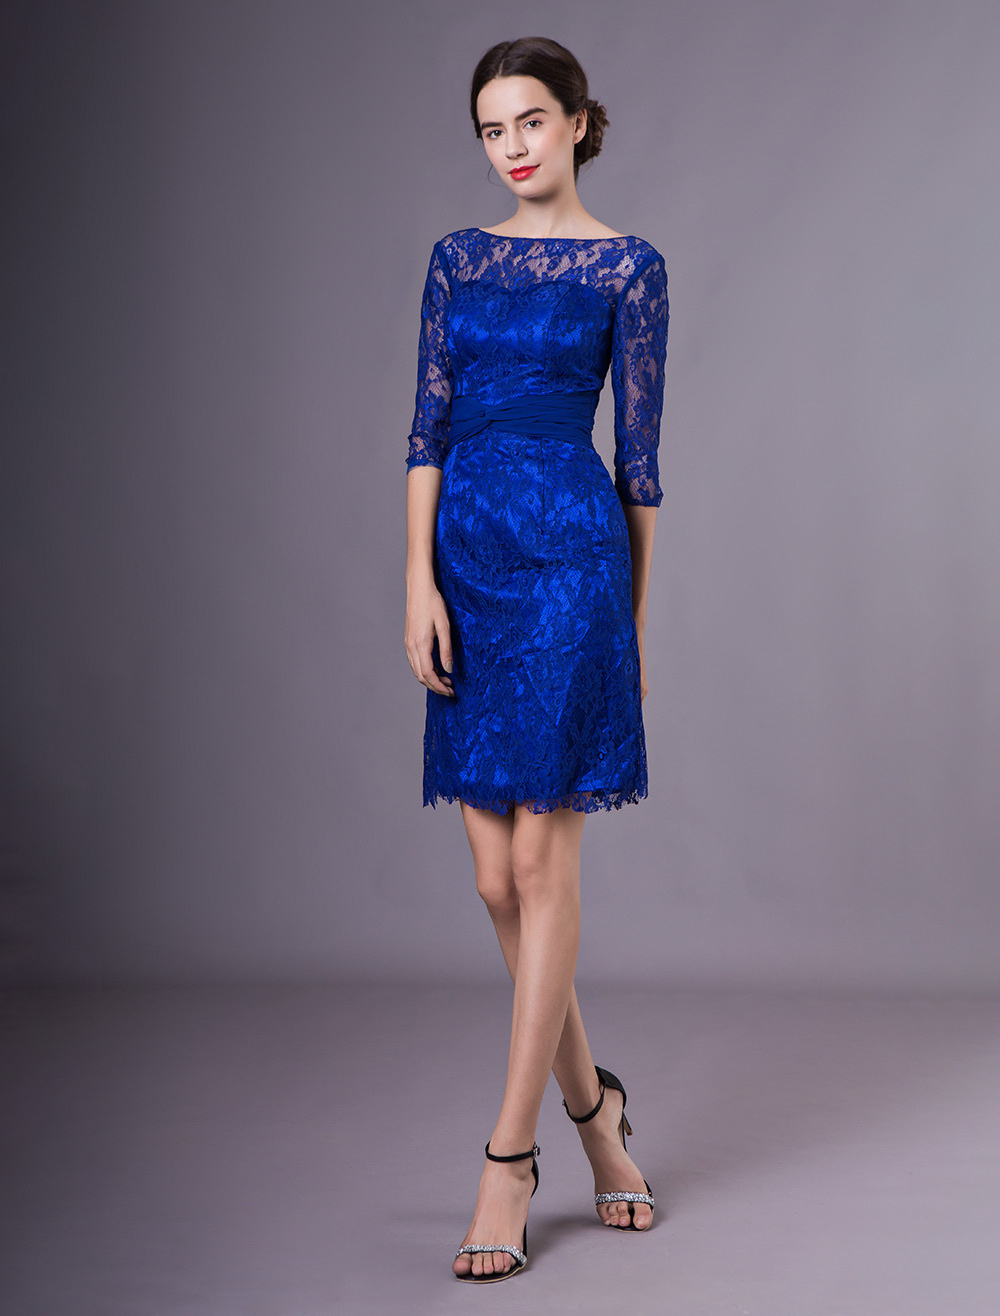 Buy Charming Royal Blue Crewneck Twisted Lace Dress For Mother Of Bride Wedding Guest Dress for $128.69 in Milanoo store